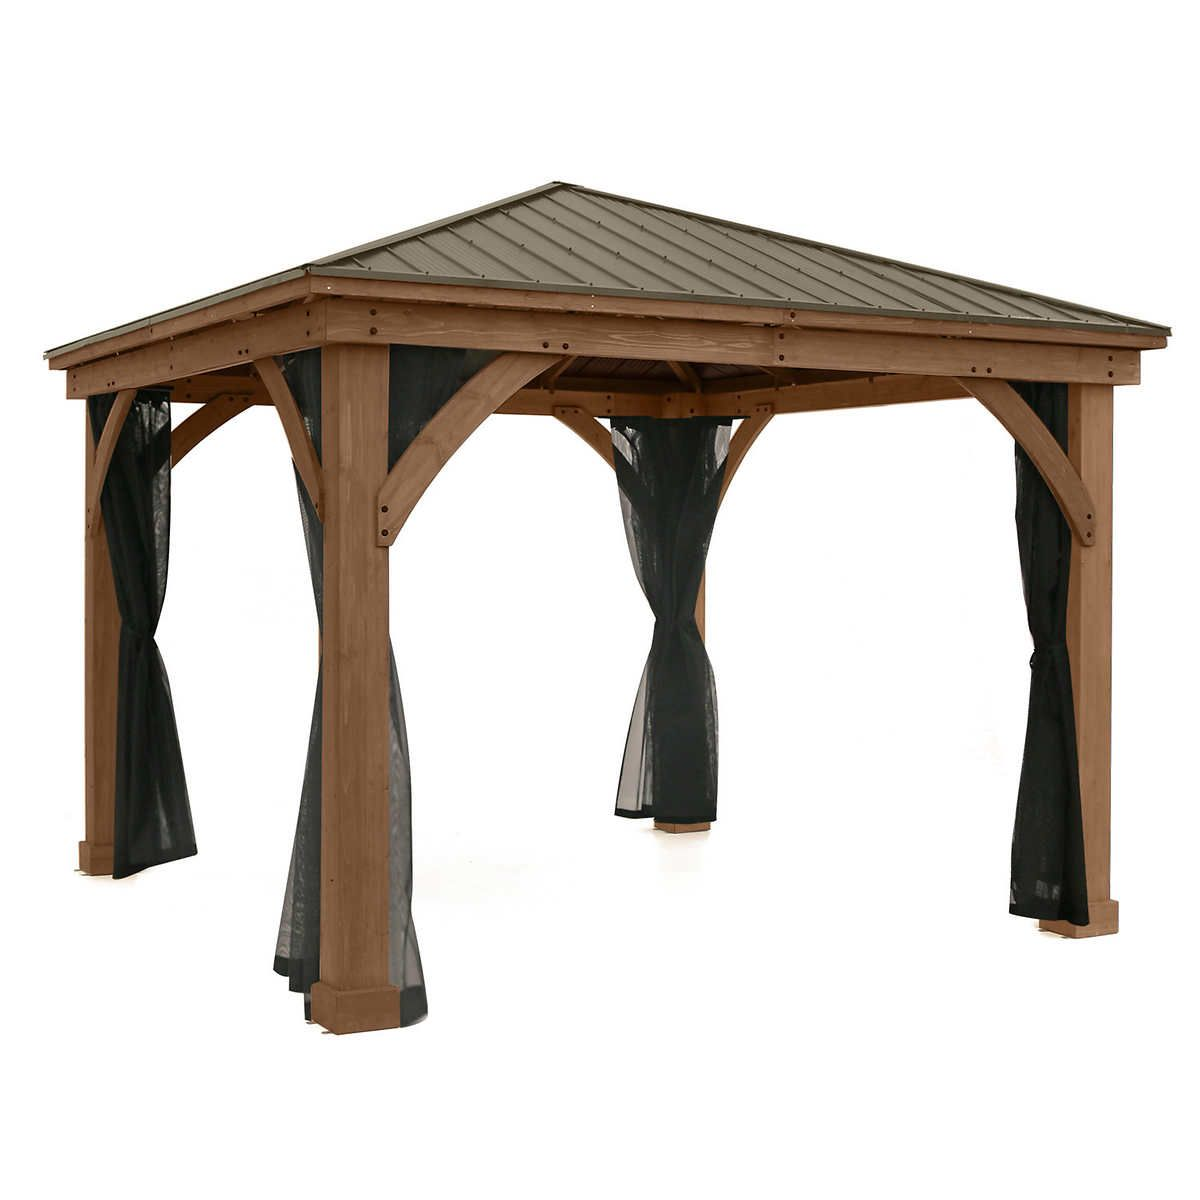 Yardistry Gazebo Mosquito Mesh Kit In 2020 Gazebo Rustic Hot Tubs Aluminum Roof